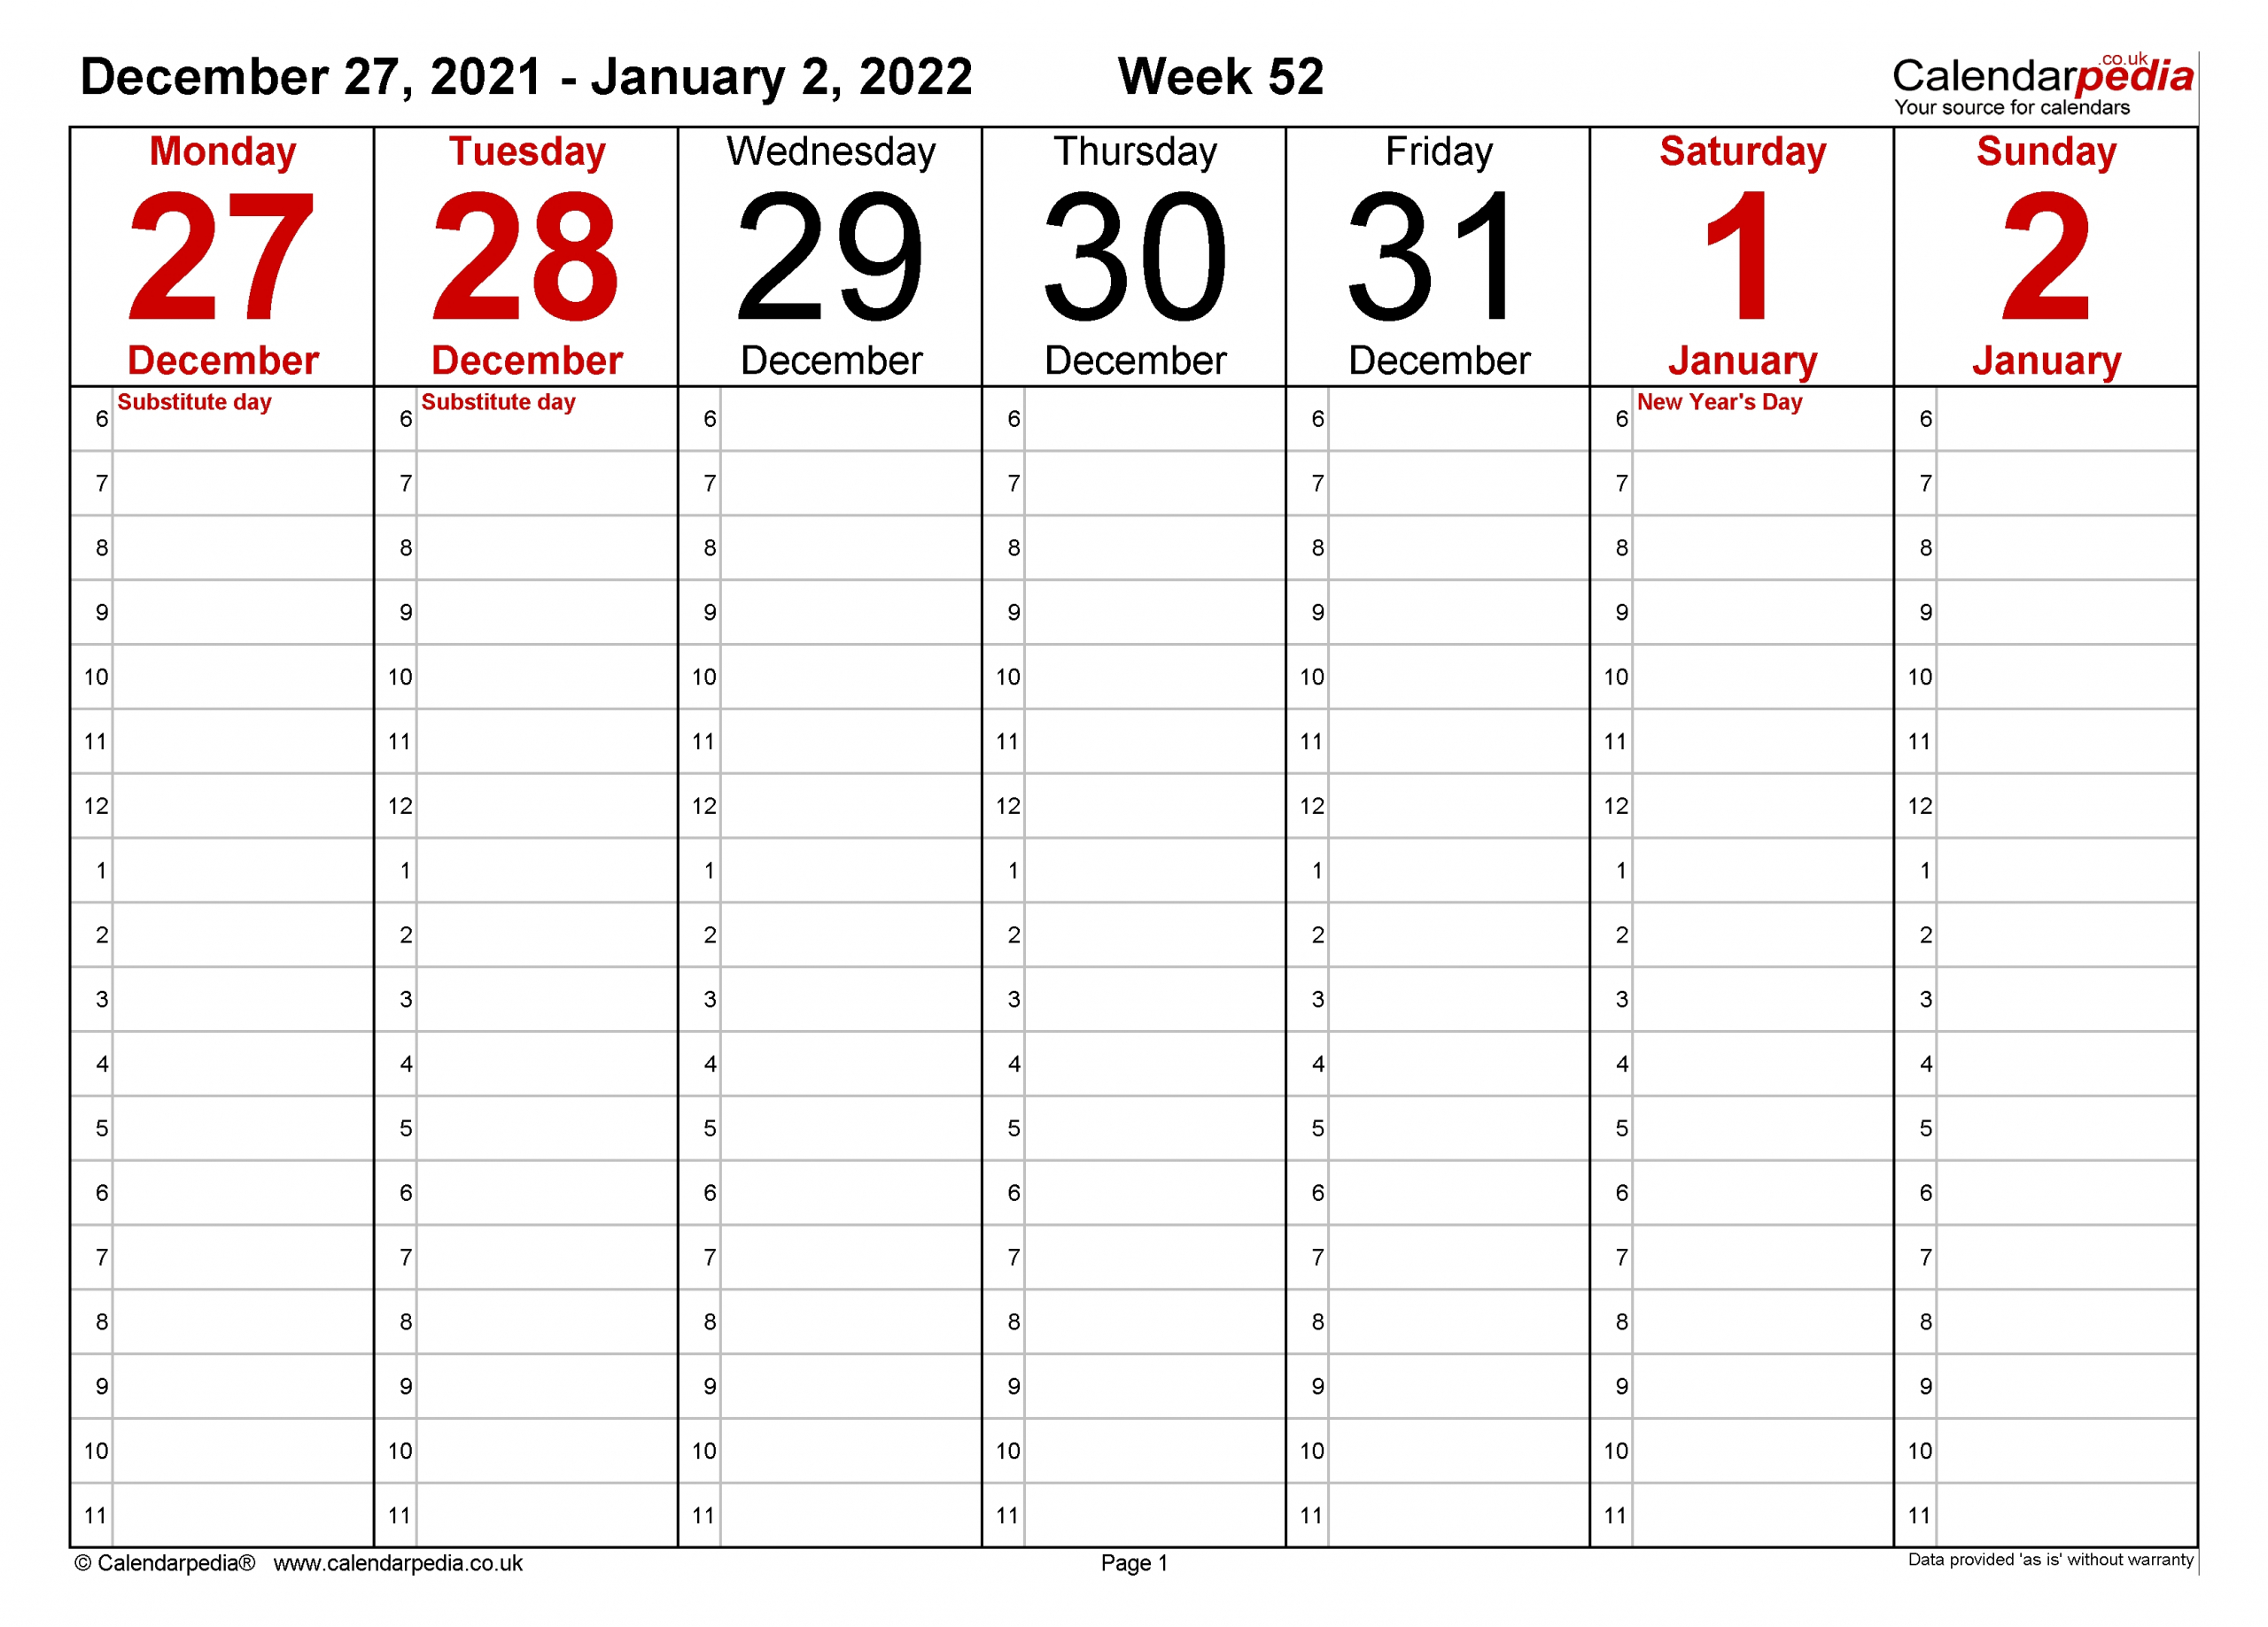 Calendar 2021 Showing The Number Of Days 1 To 365 Days Numbered 1 To 365